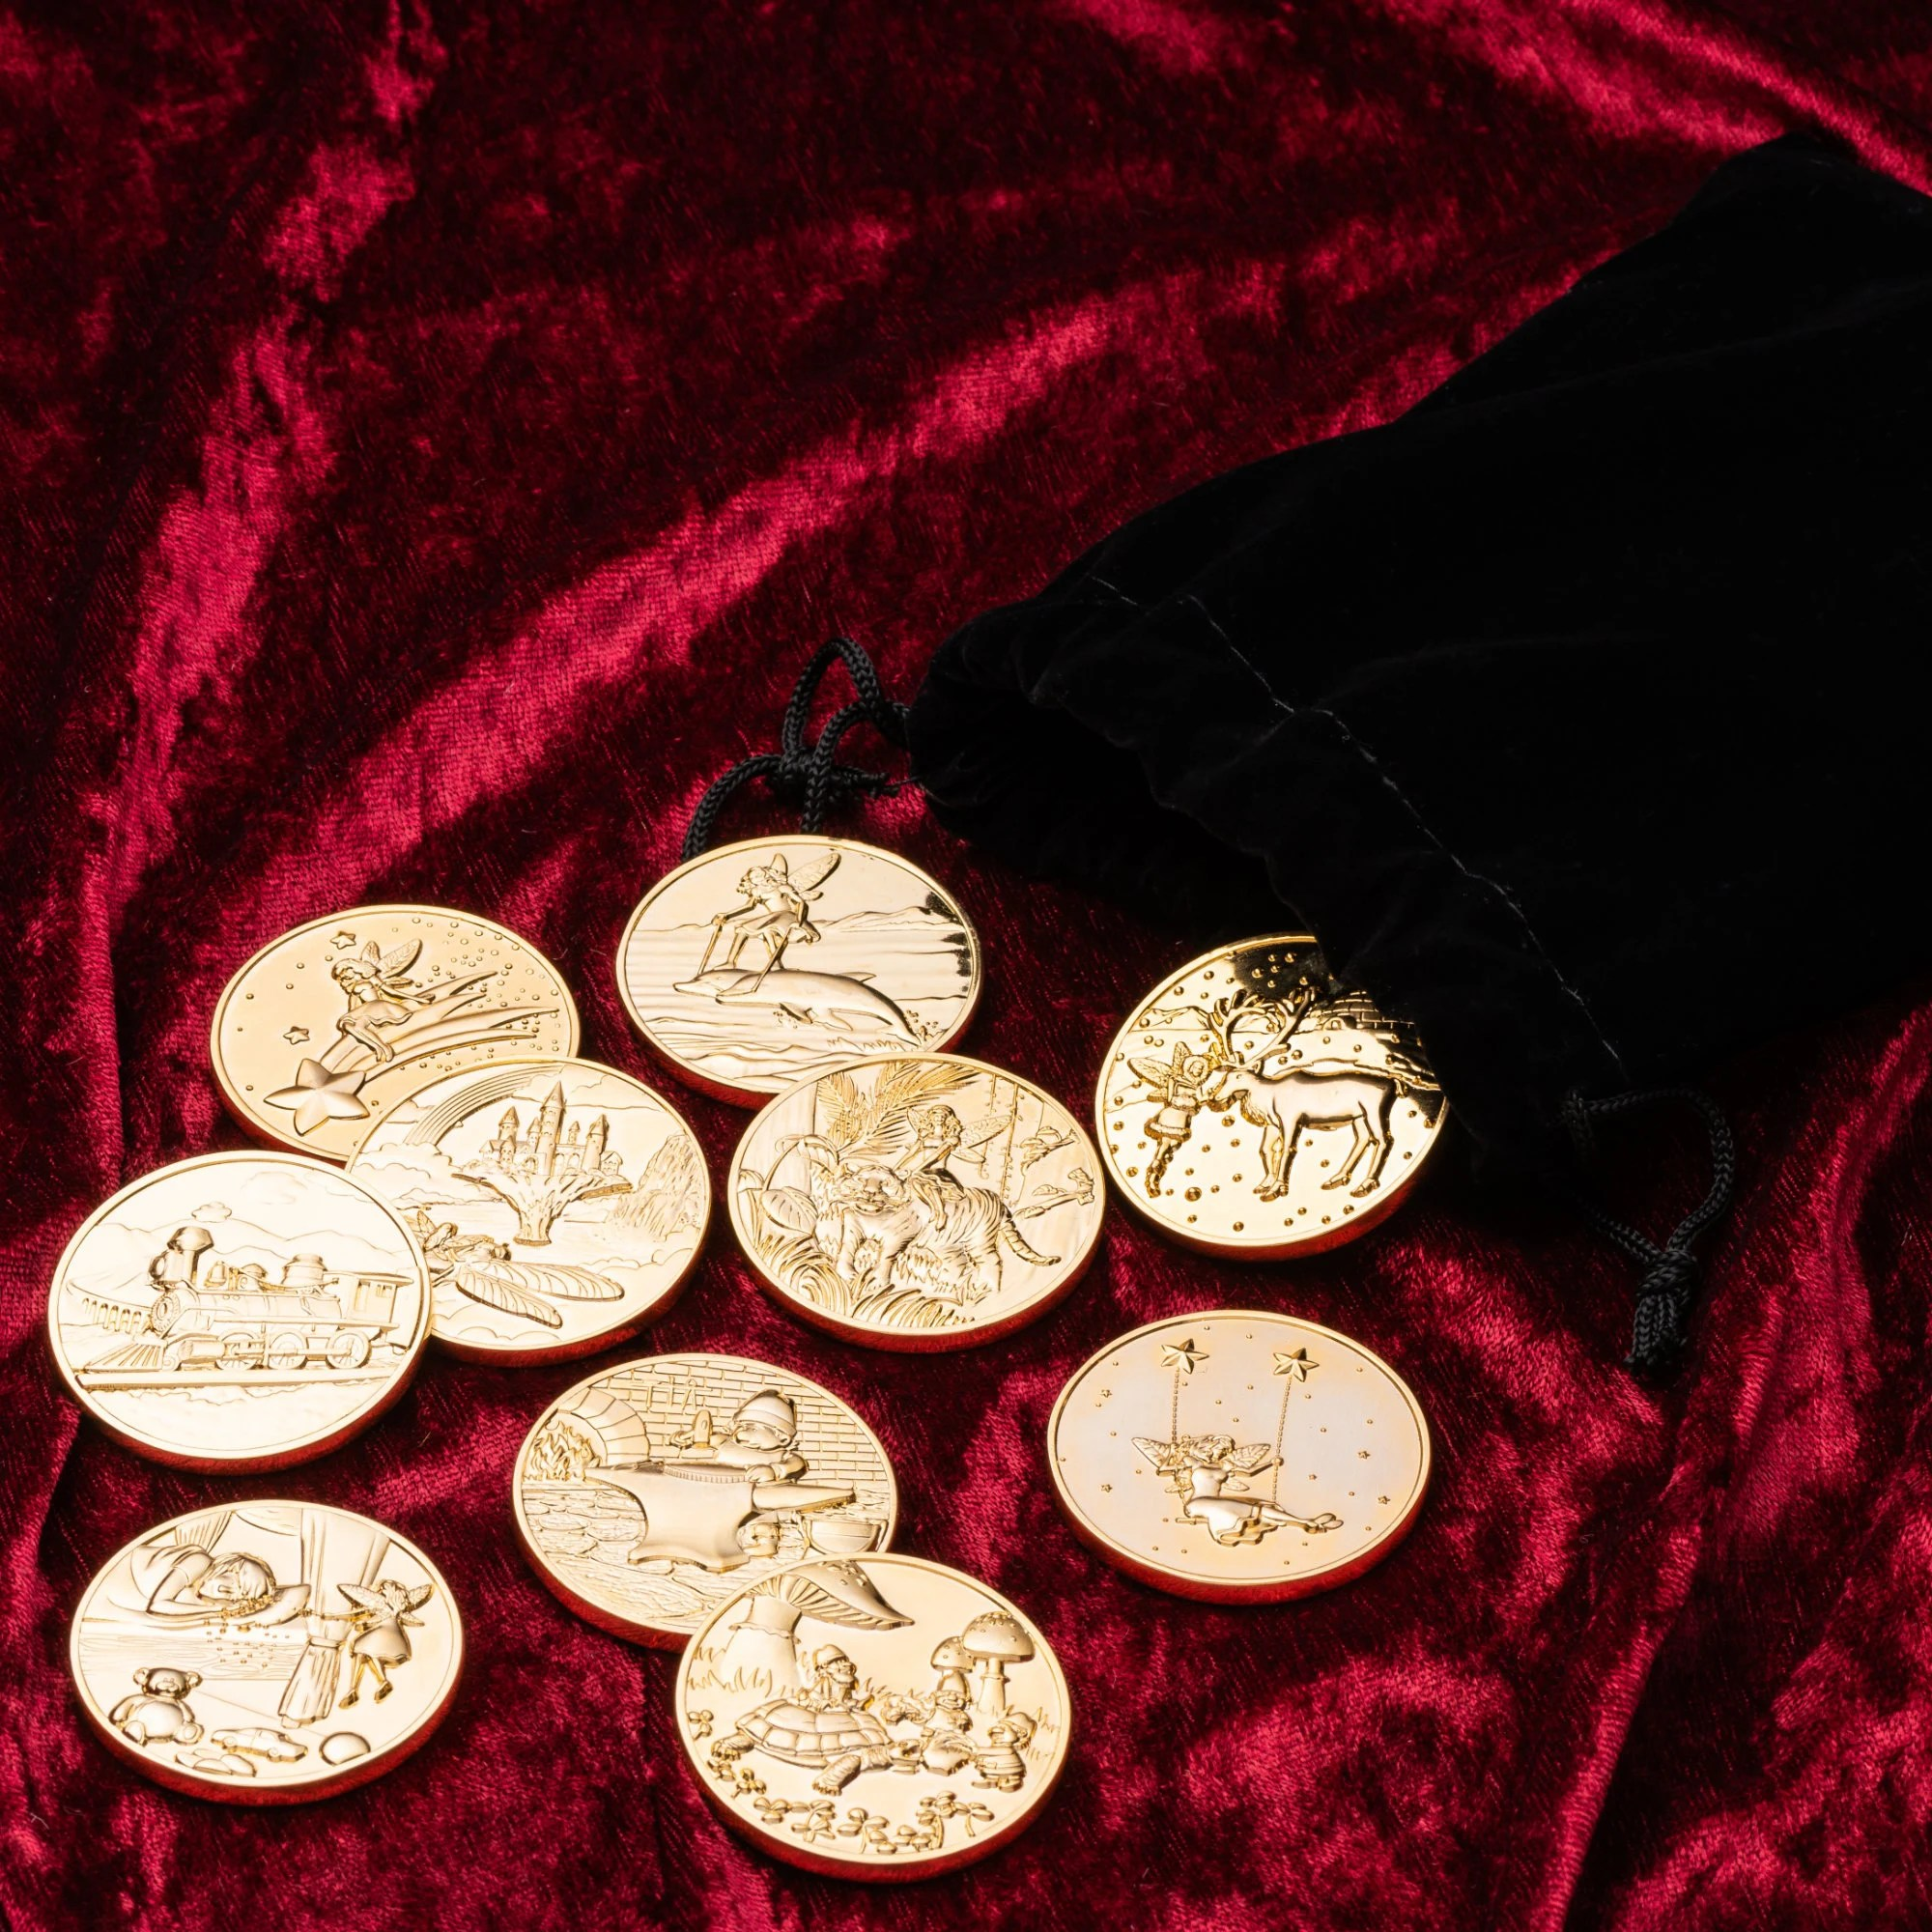 Tooth Fairy Coins Designer Set 1 goldplated image 2